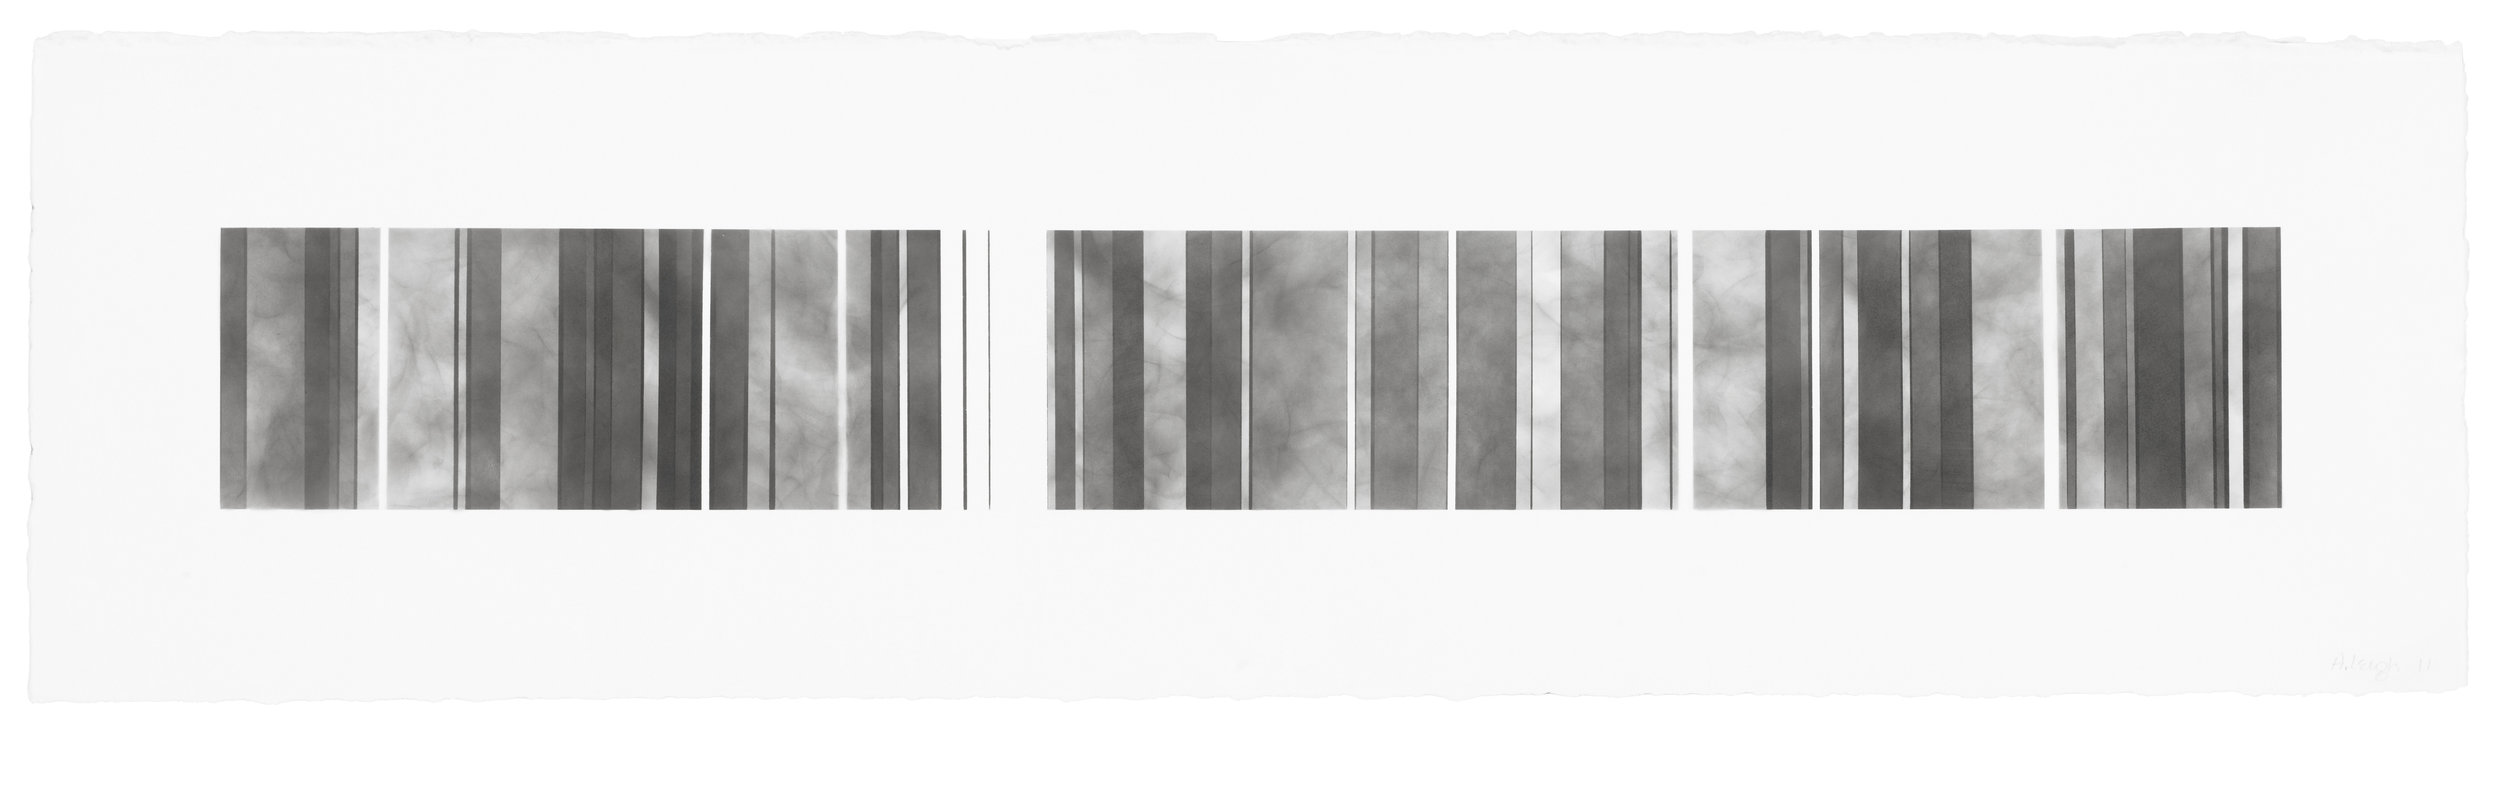 Barcode Series B 11, smoke on  paper, 11 by 40.5 inches, 2012